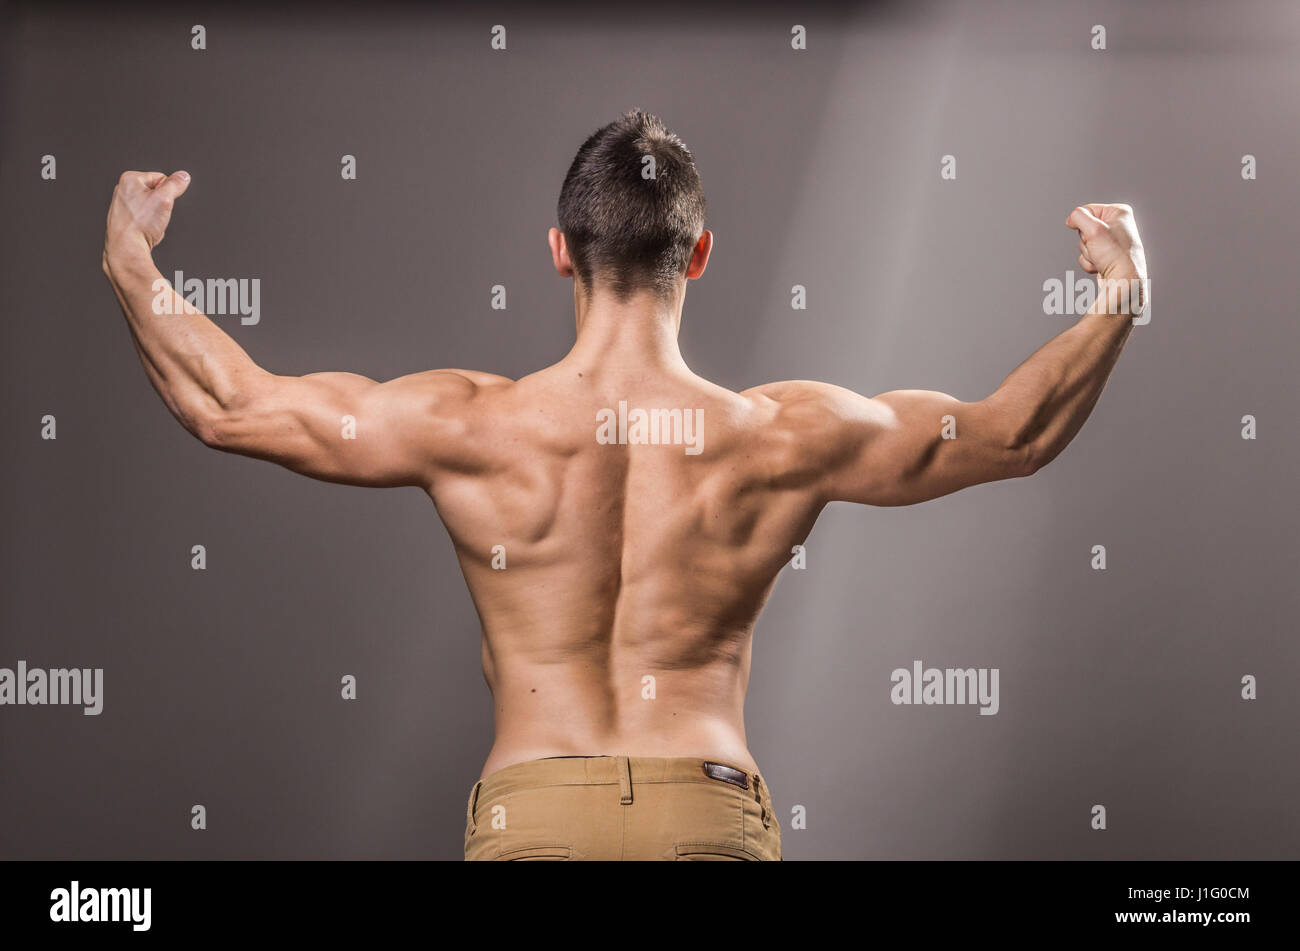 rear view, back muscles bodybuilder, young adult man posing, arms ...